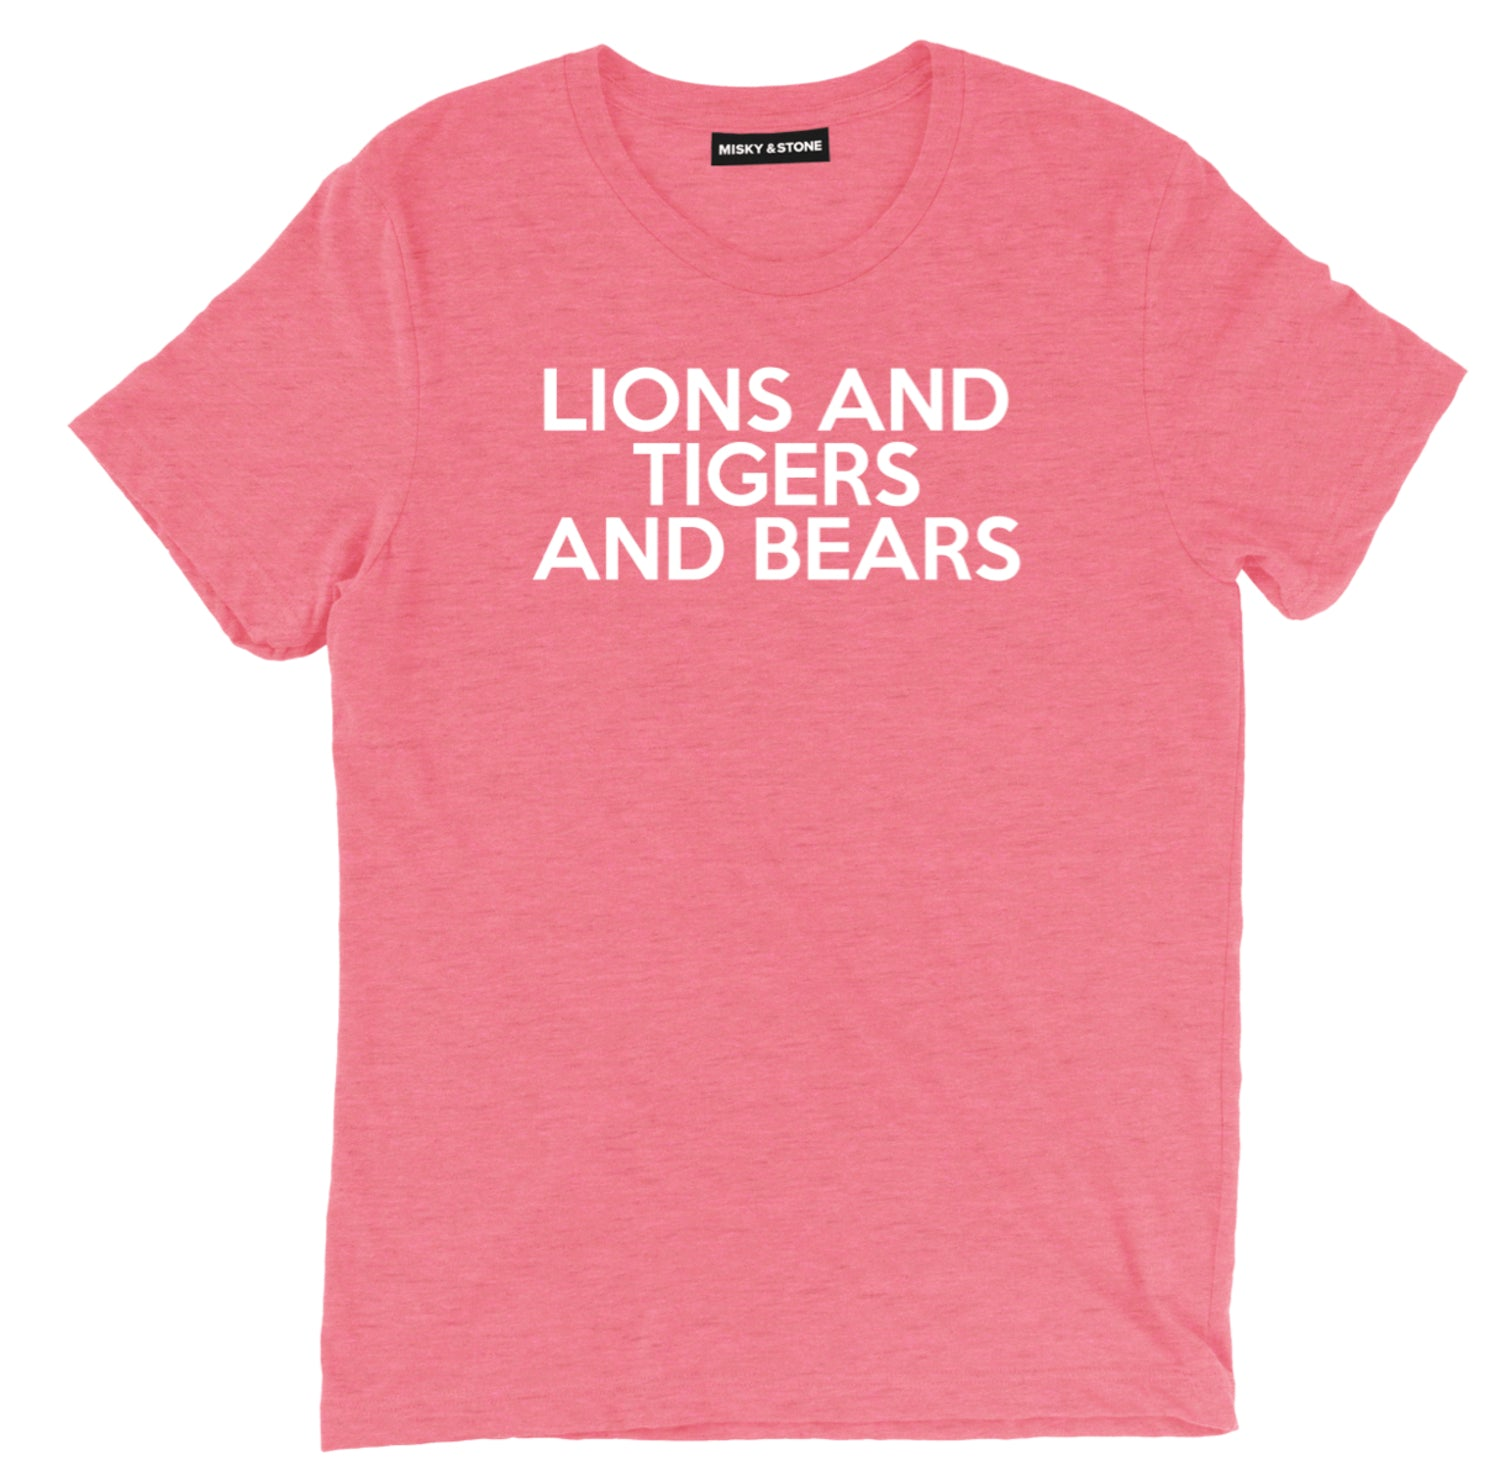 Lions And Tigers And Bears Tee